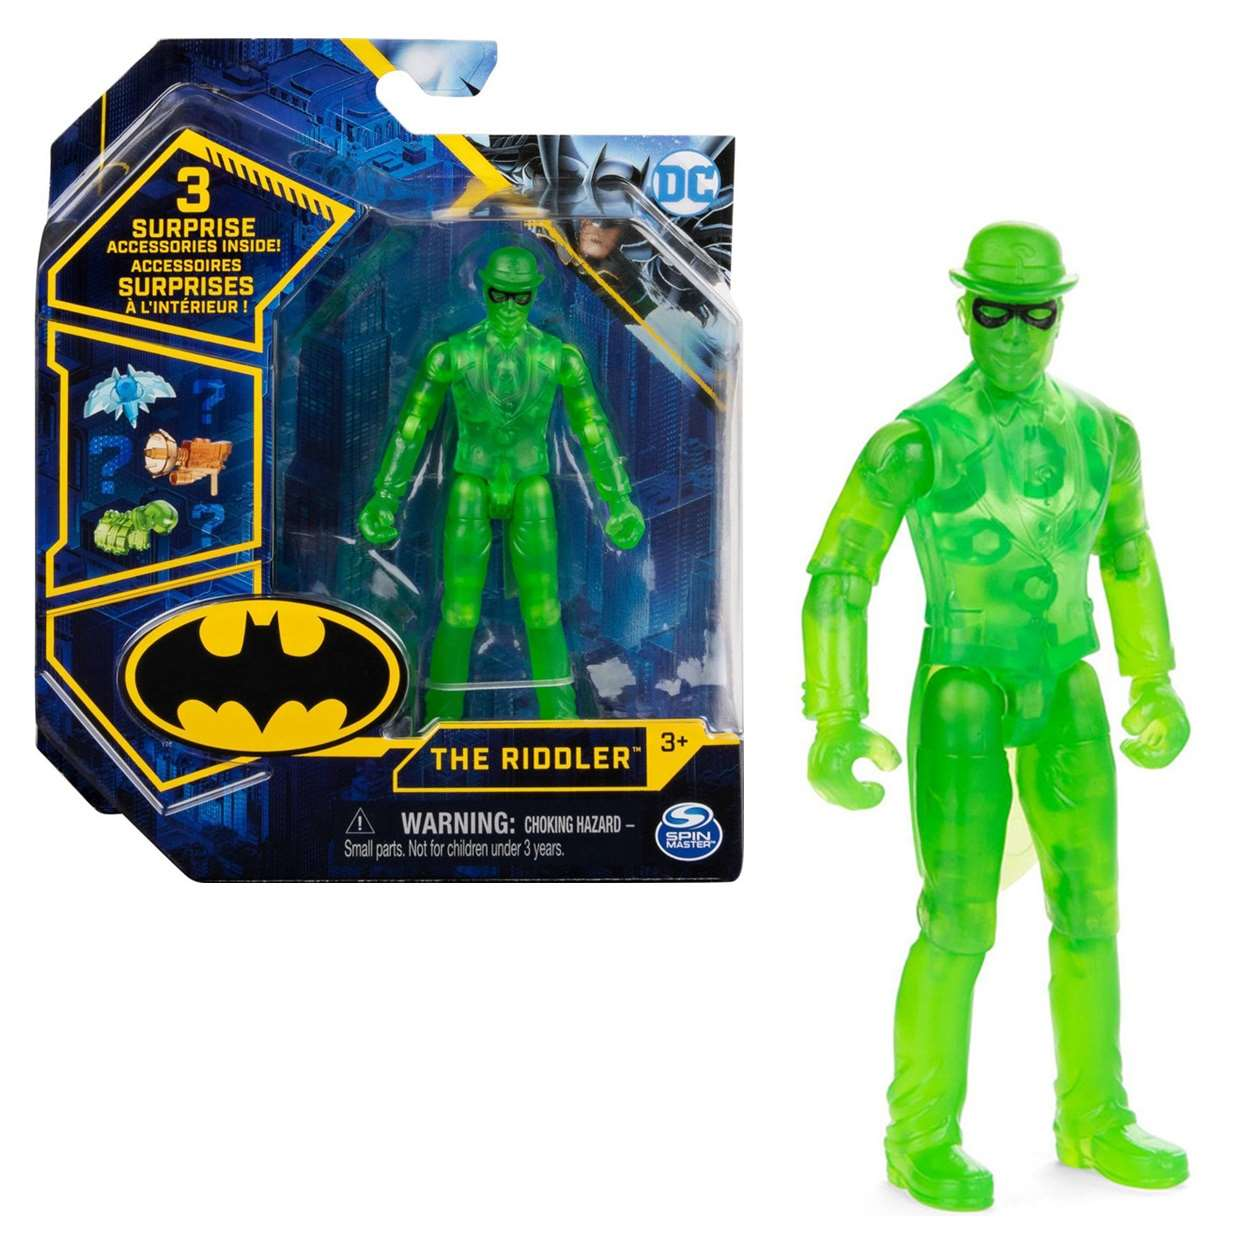 The Riddler (Acertijo) Figura Collect Them All Spin Master